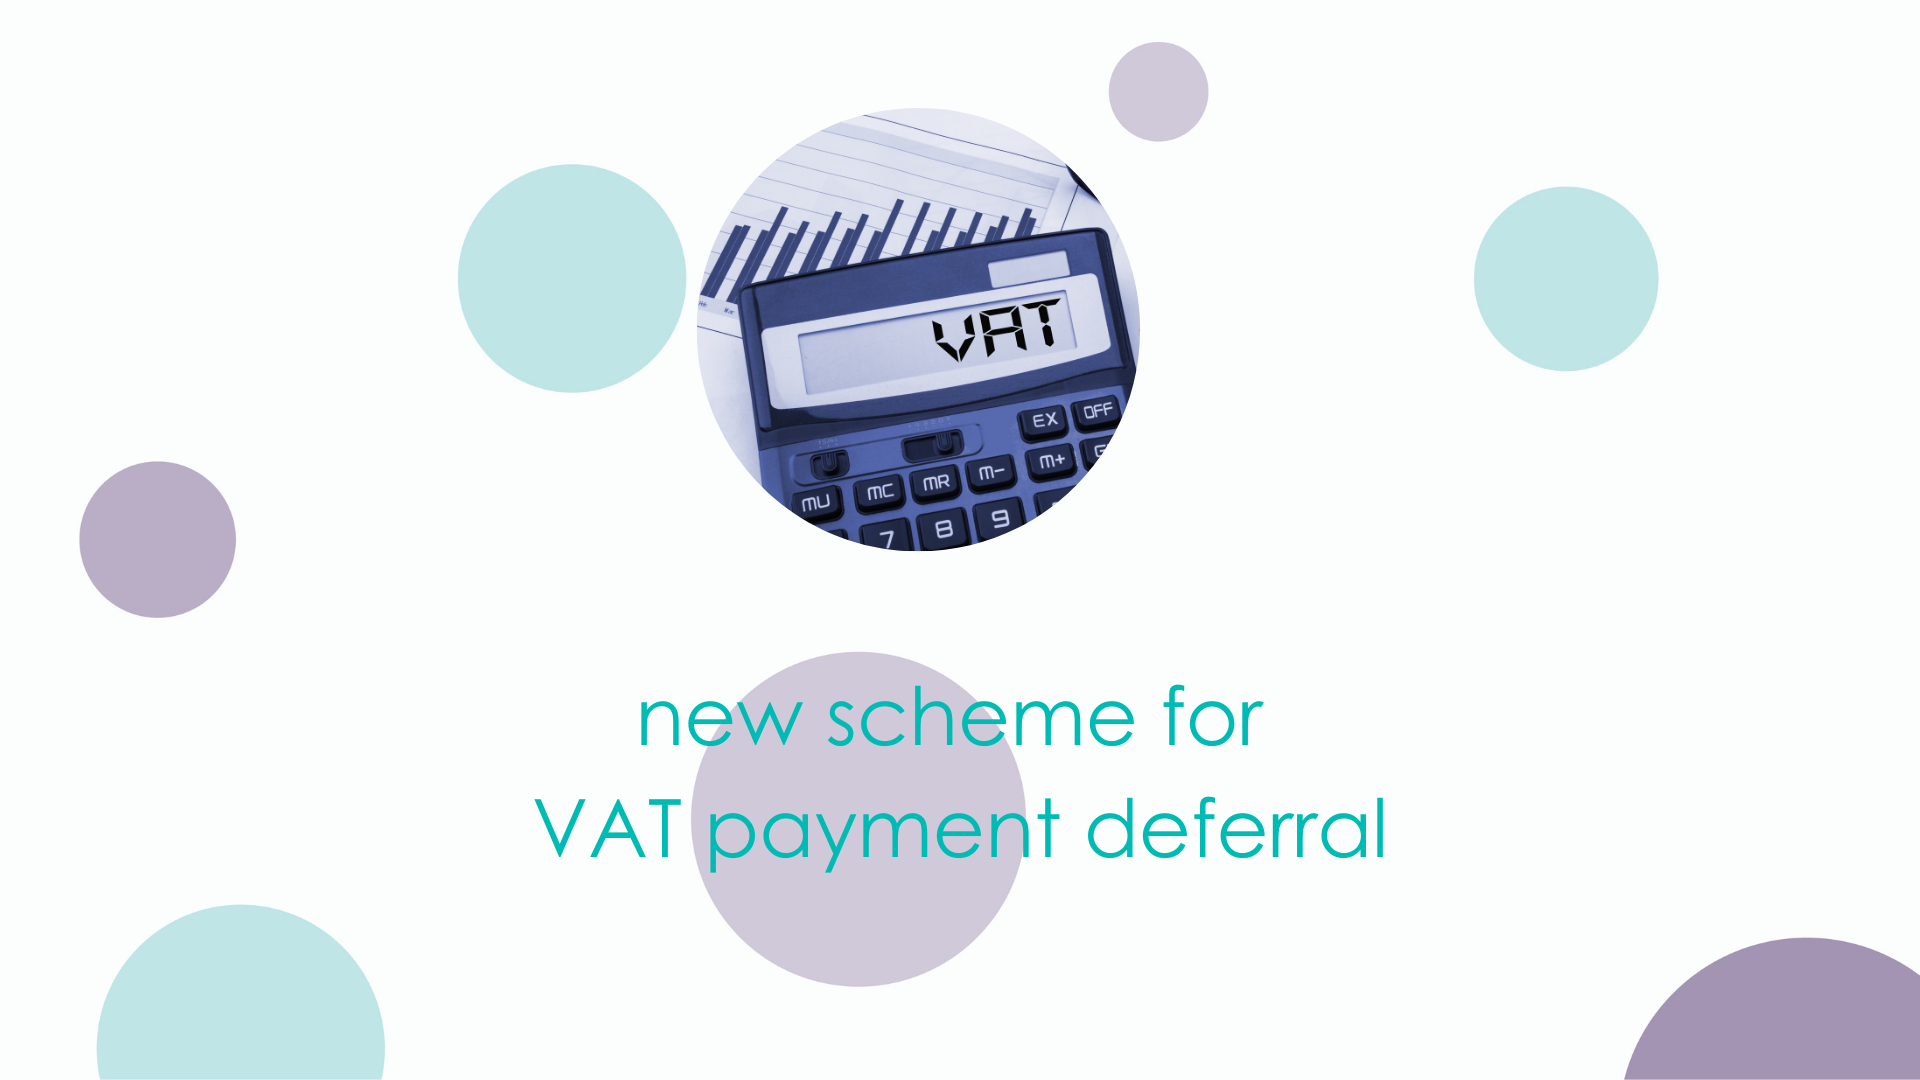 VAT deferral: What you need to know about the new payment scheme